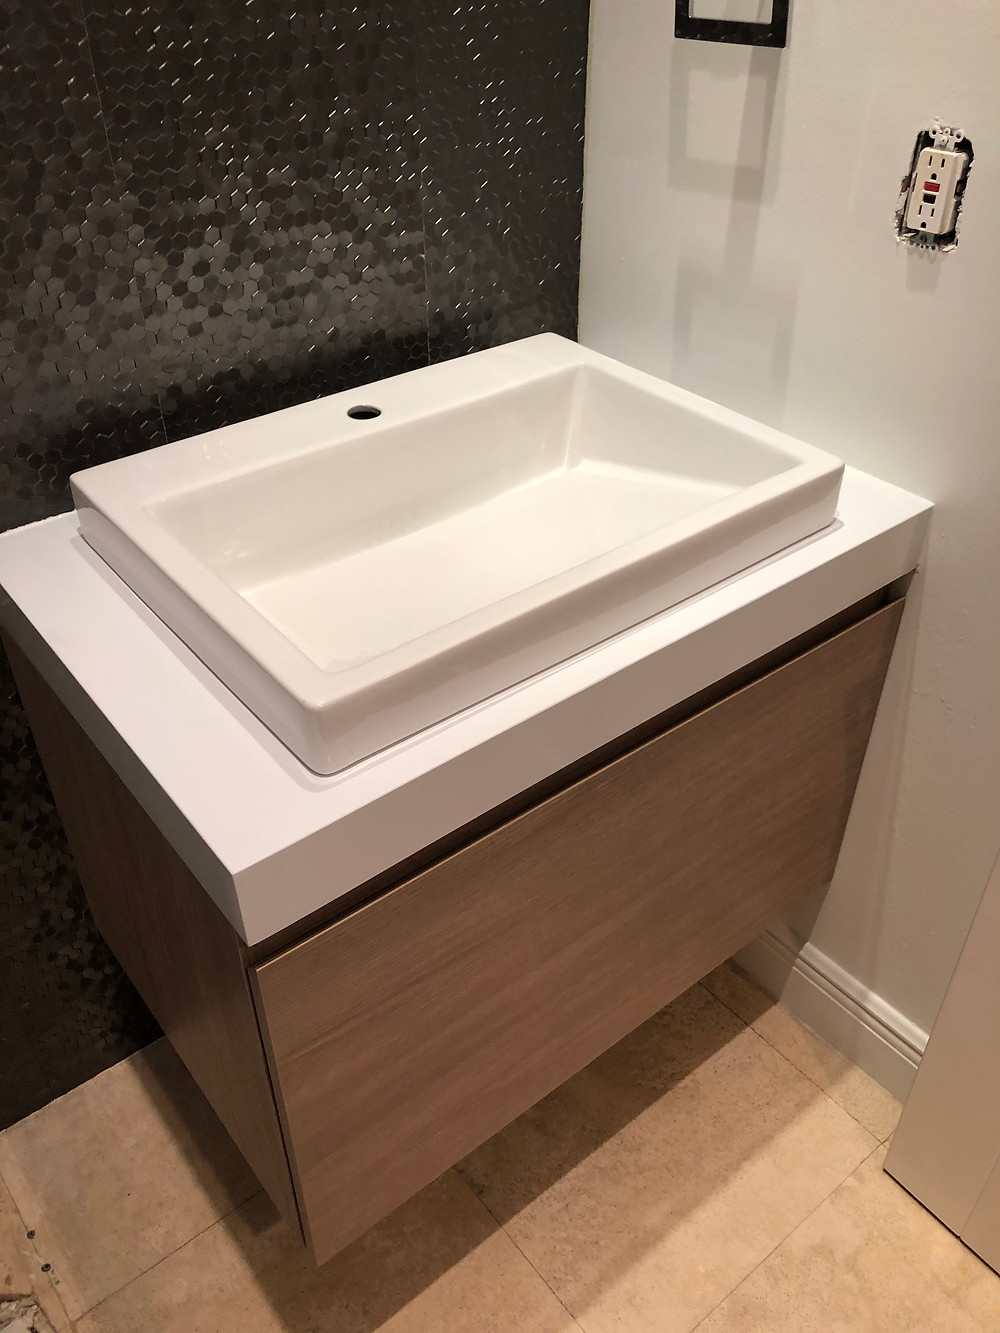 Cambria white quartz countertops installer near me Boca Raton FL, Contact Stone and Quartz LLC